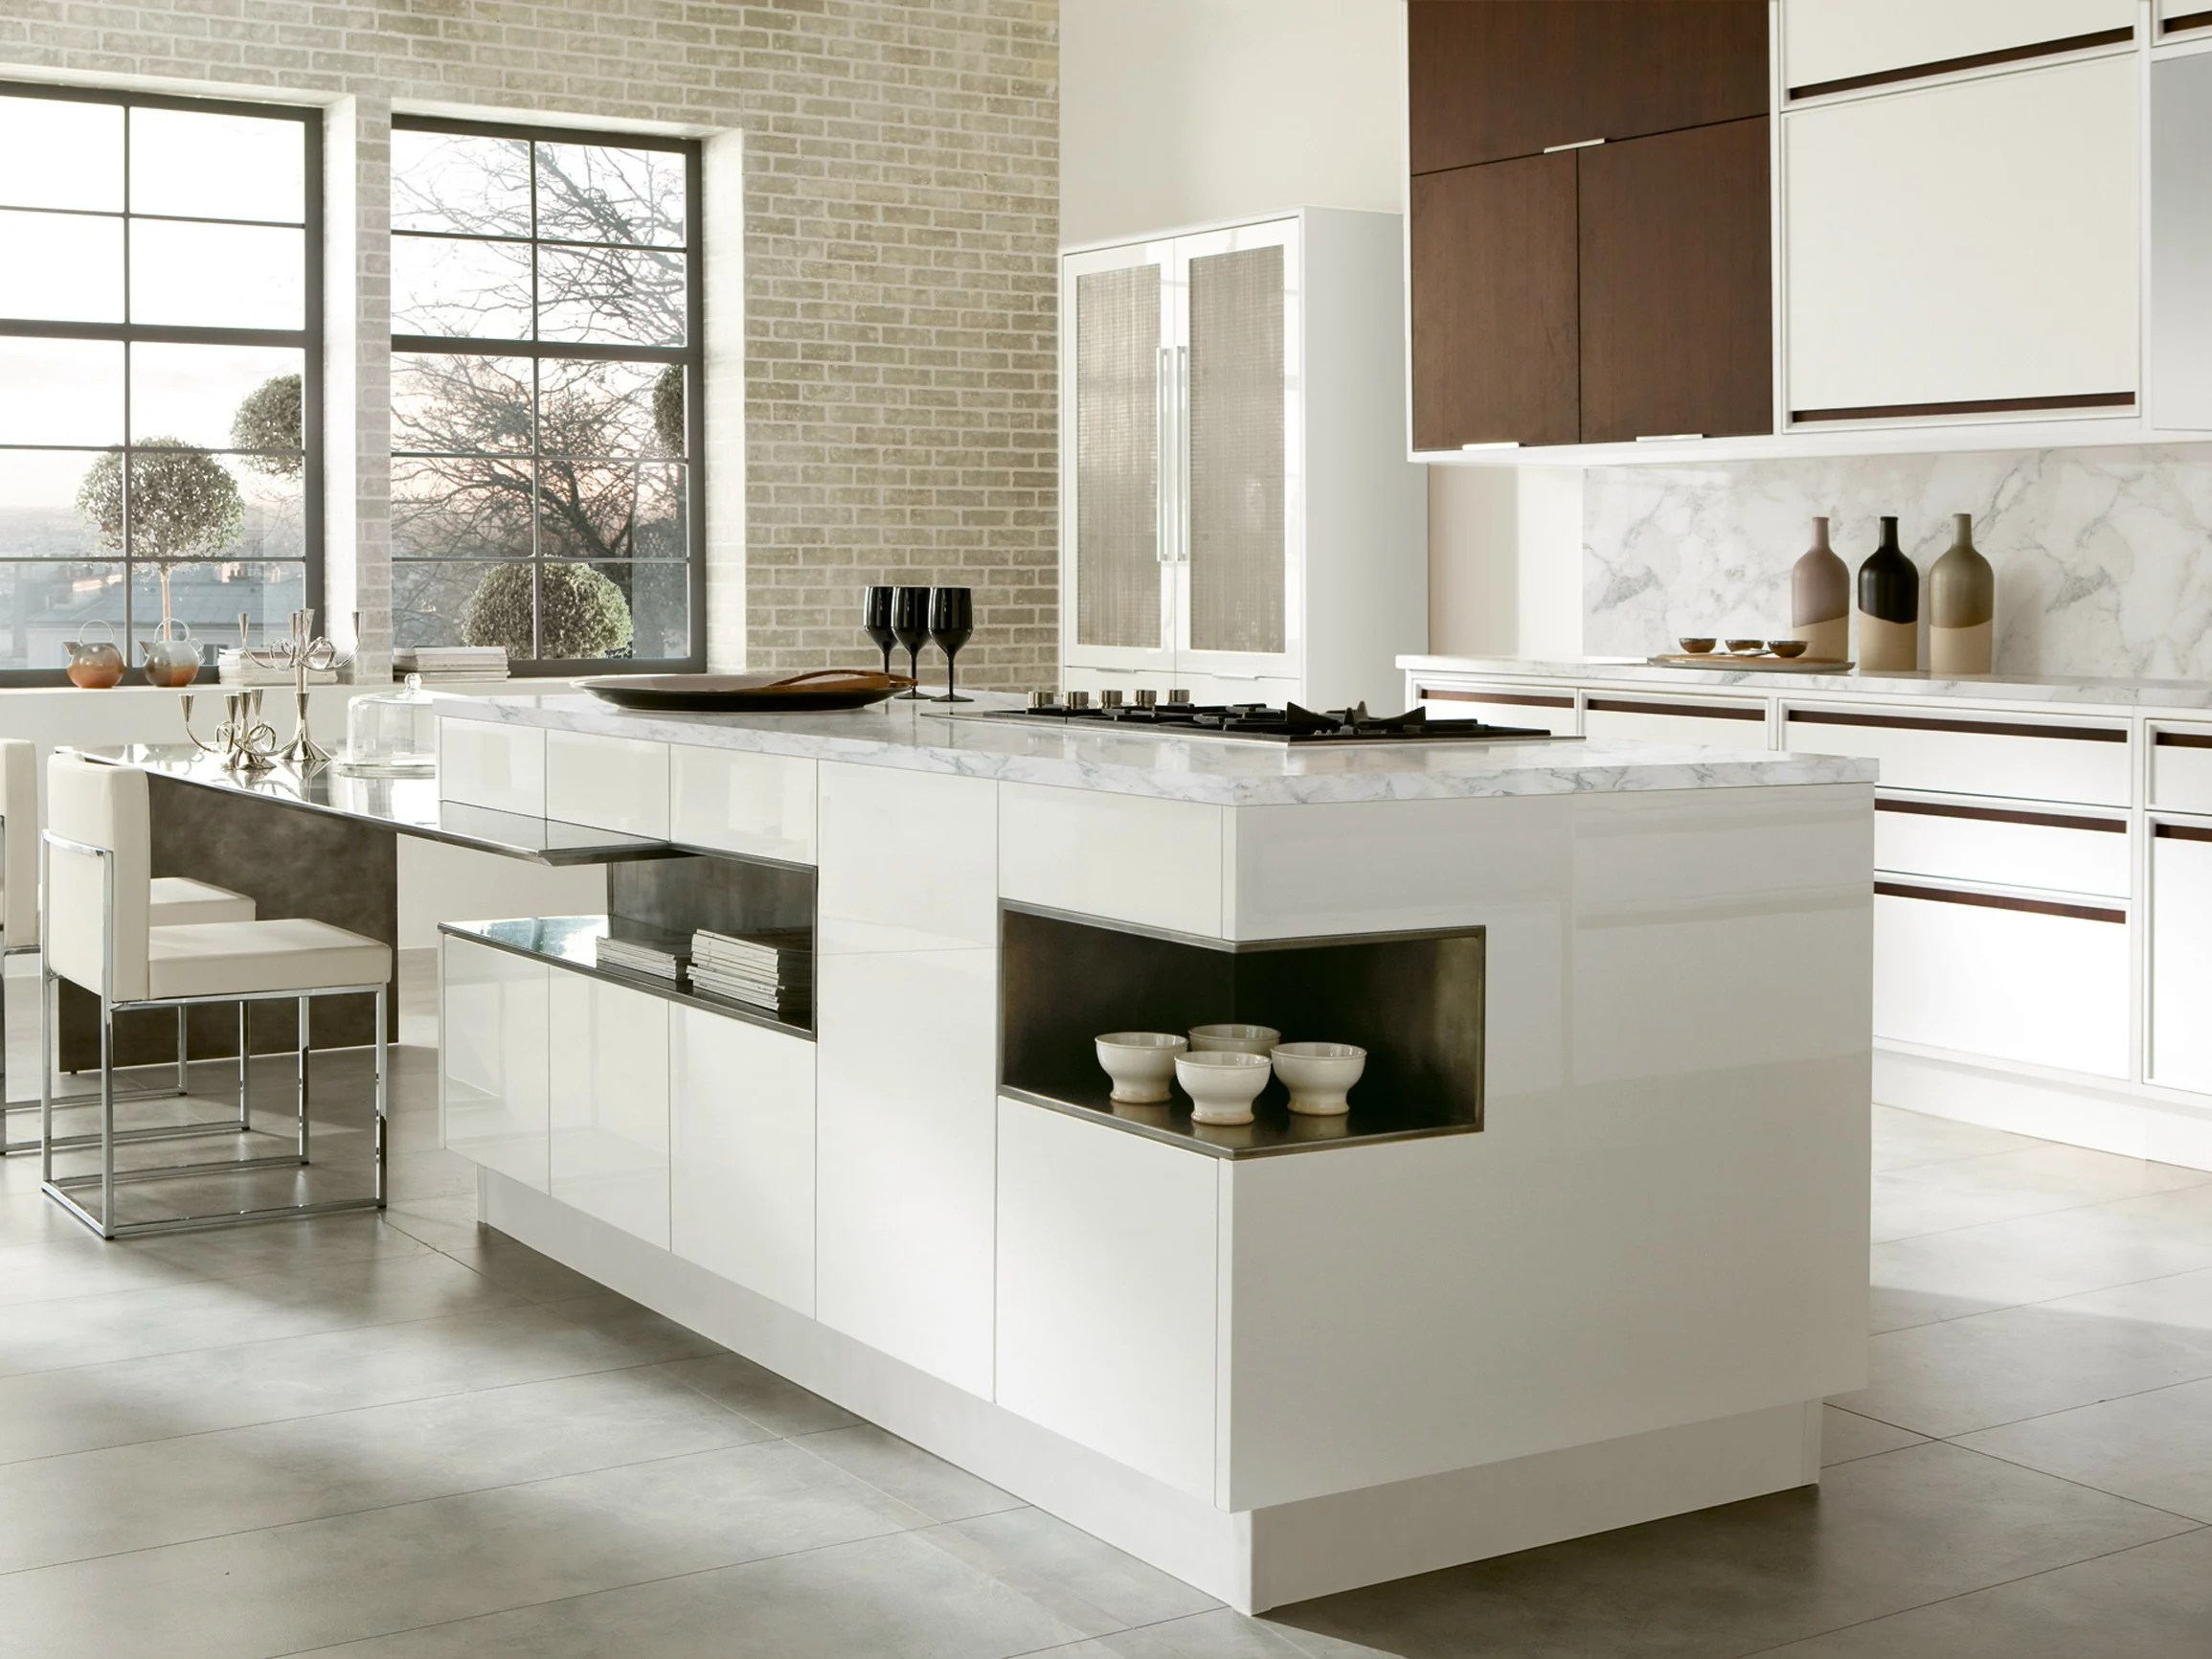 Cucina Isola Misure Timeline Cucina Con Isola By Aster Cucine S P A